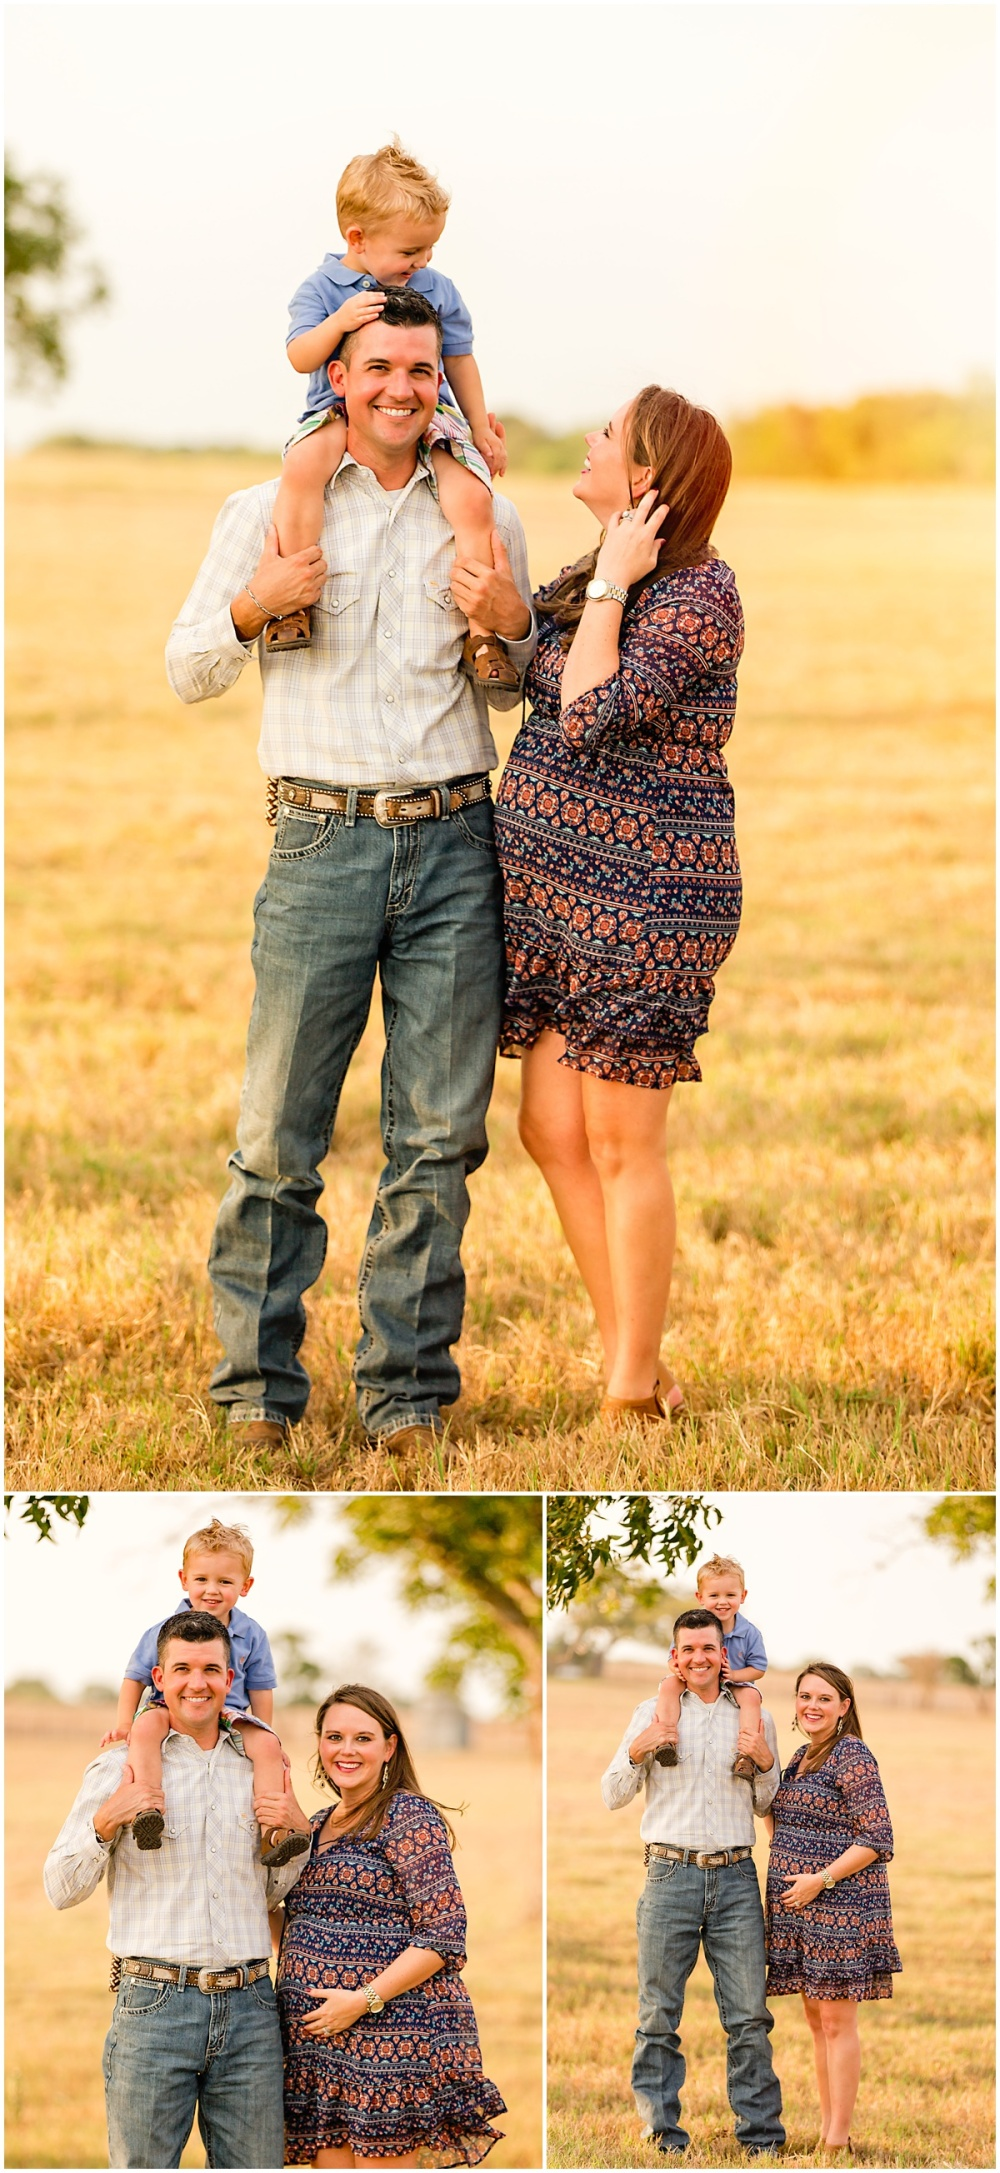 Family-Children-Portraits-Maternity-Photos-San-Antonio-Hill-Country-Texas-Carly-Barton-Photography_0006.jpg